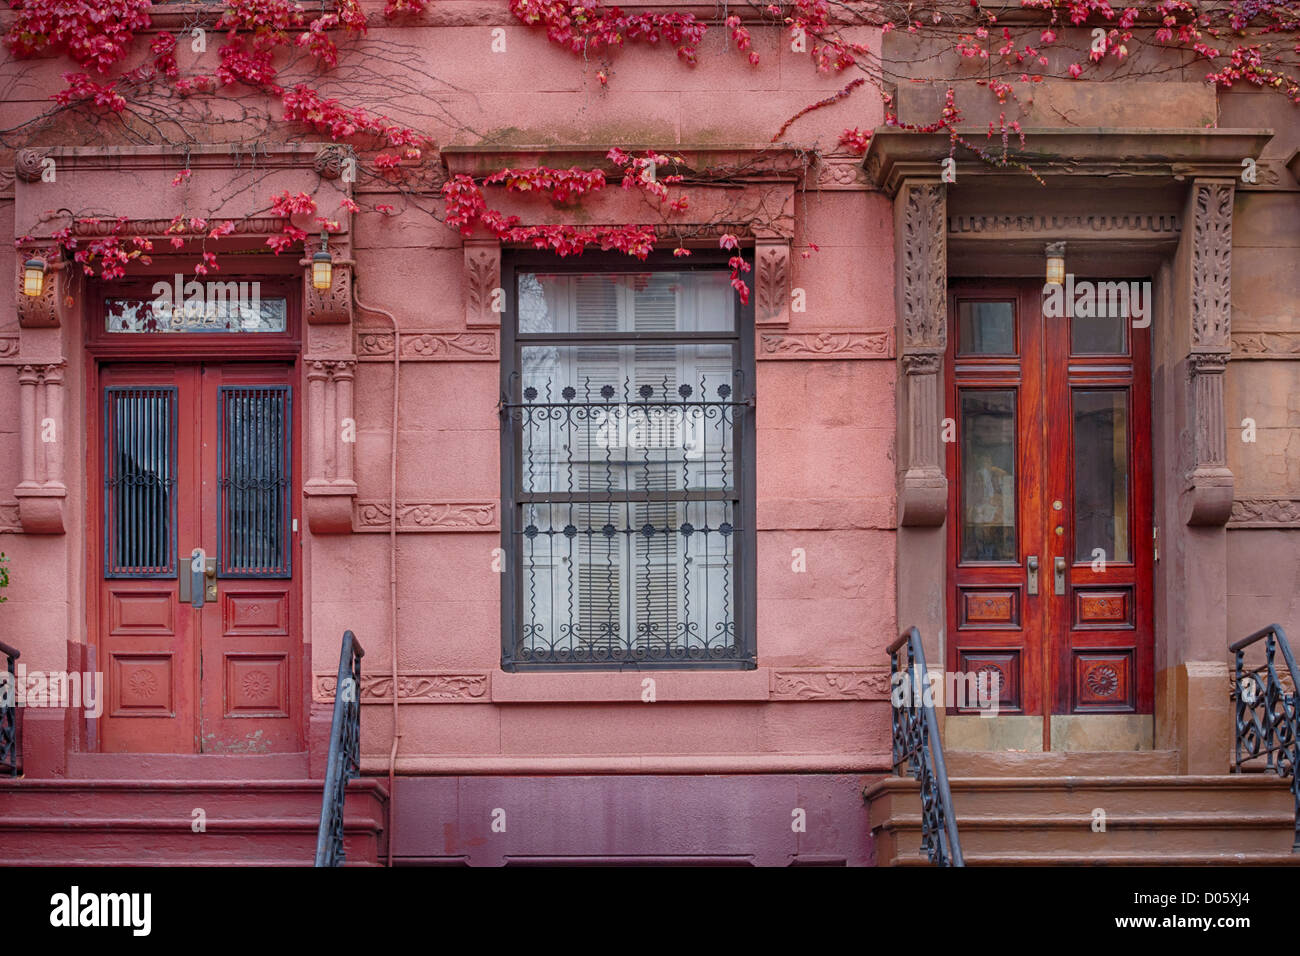 Row House doors with pink ivy Harlem New York USA - Stock Image & Doors Stoops Stock Photos u0026 Doors Stoops Stock Images - Alamy